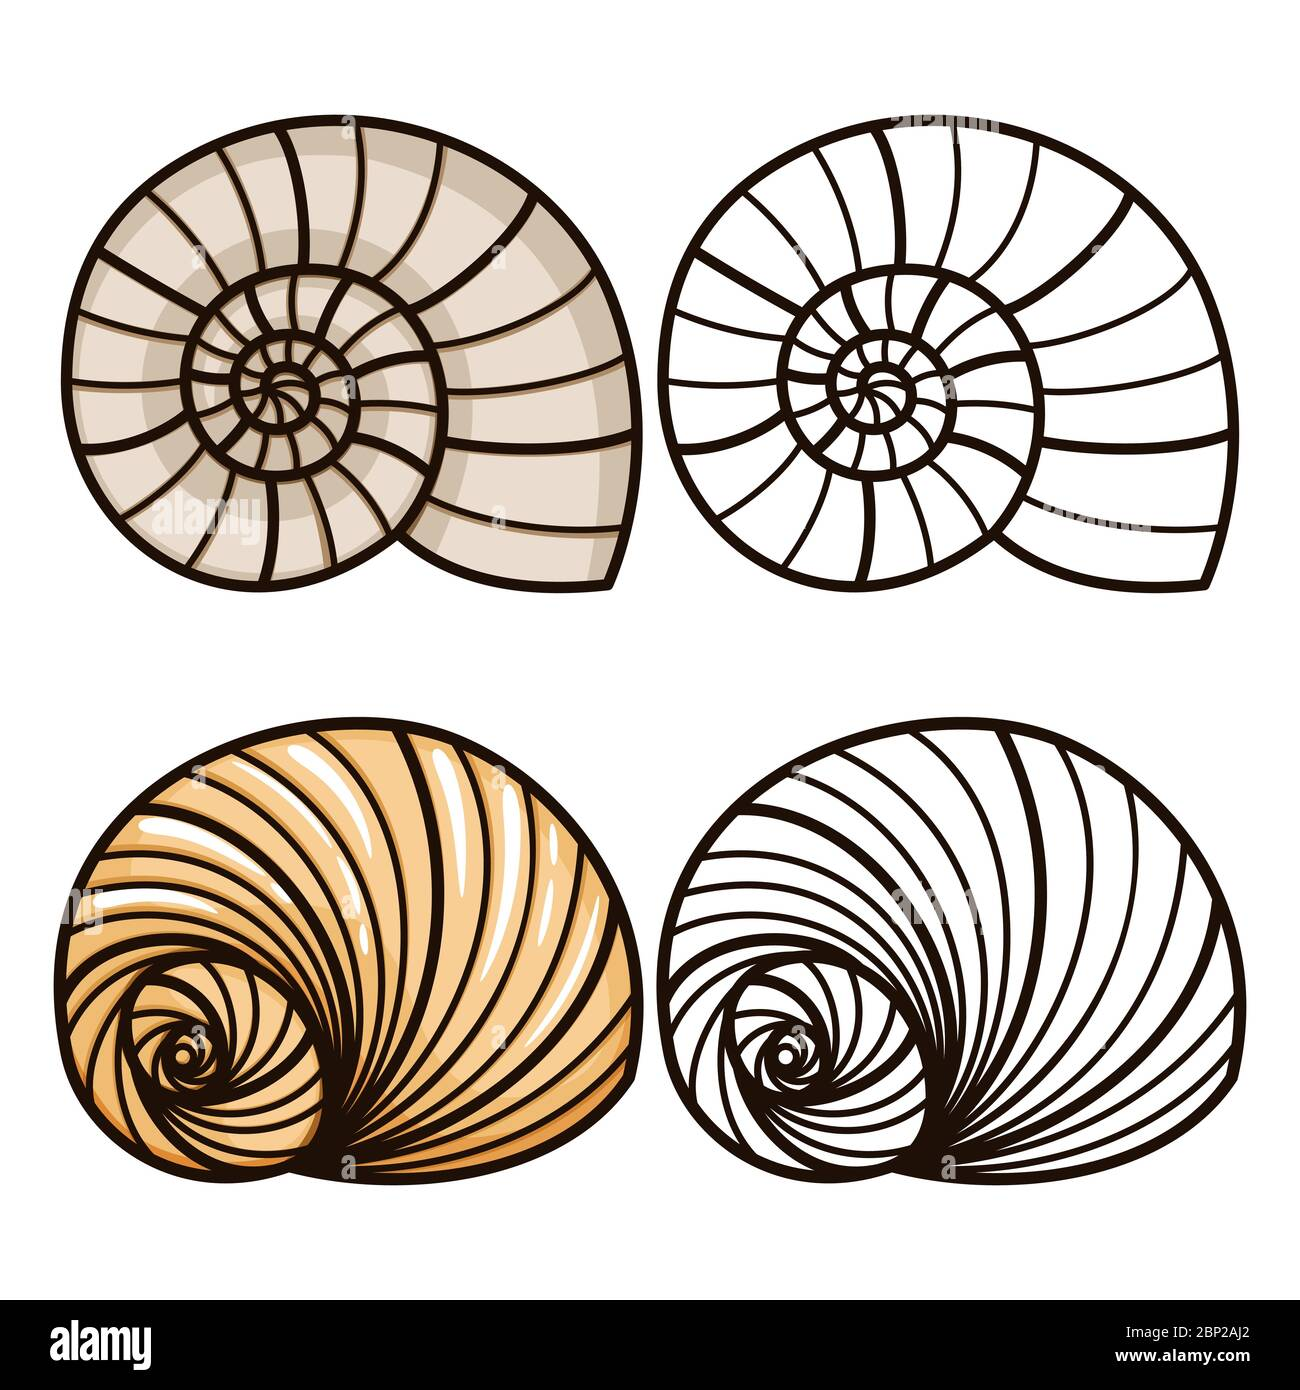 Shell #39 (Nature) – Printable coloring pages | 1390x1300